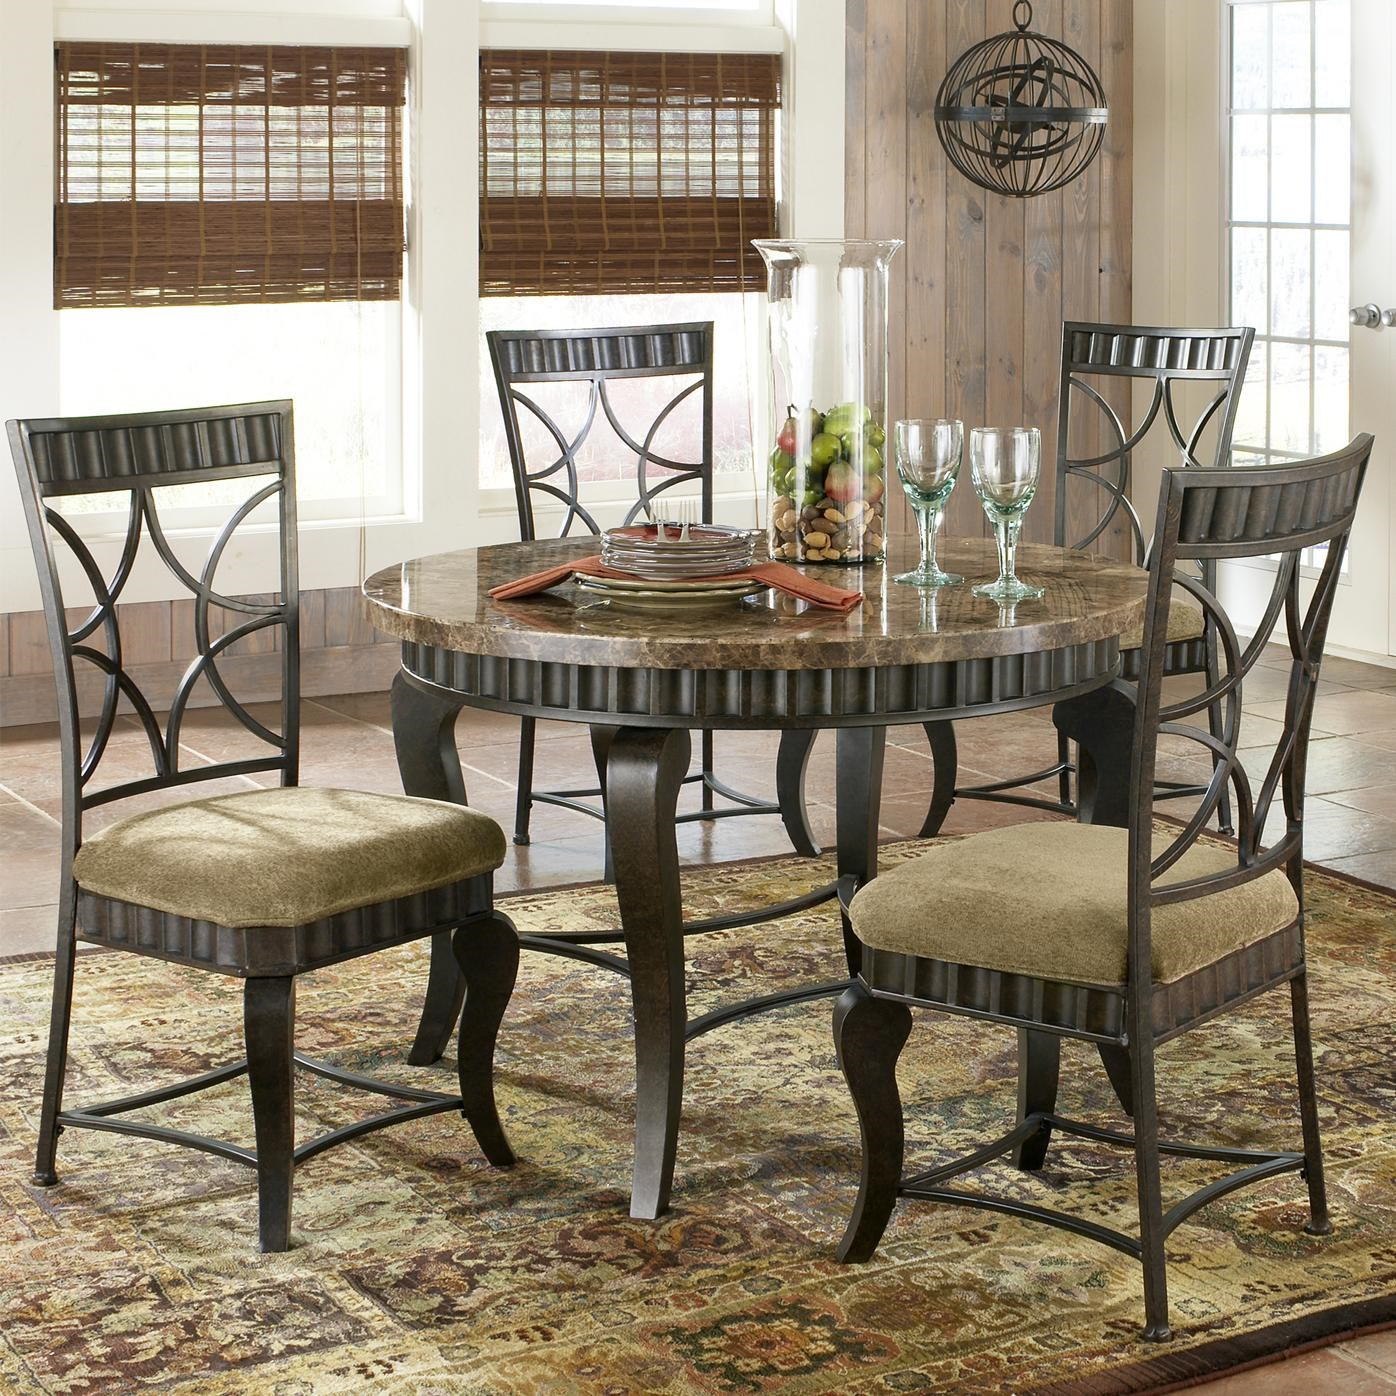 Prime Hamlyn 5 Piece Round Faux Marble Top Metal Dining Table Set  sc 1 st  Prime Brothers Furniture & Prime Hamlyn 5 Piece Round Faux Marble Top Metal Dining Table Set ...